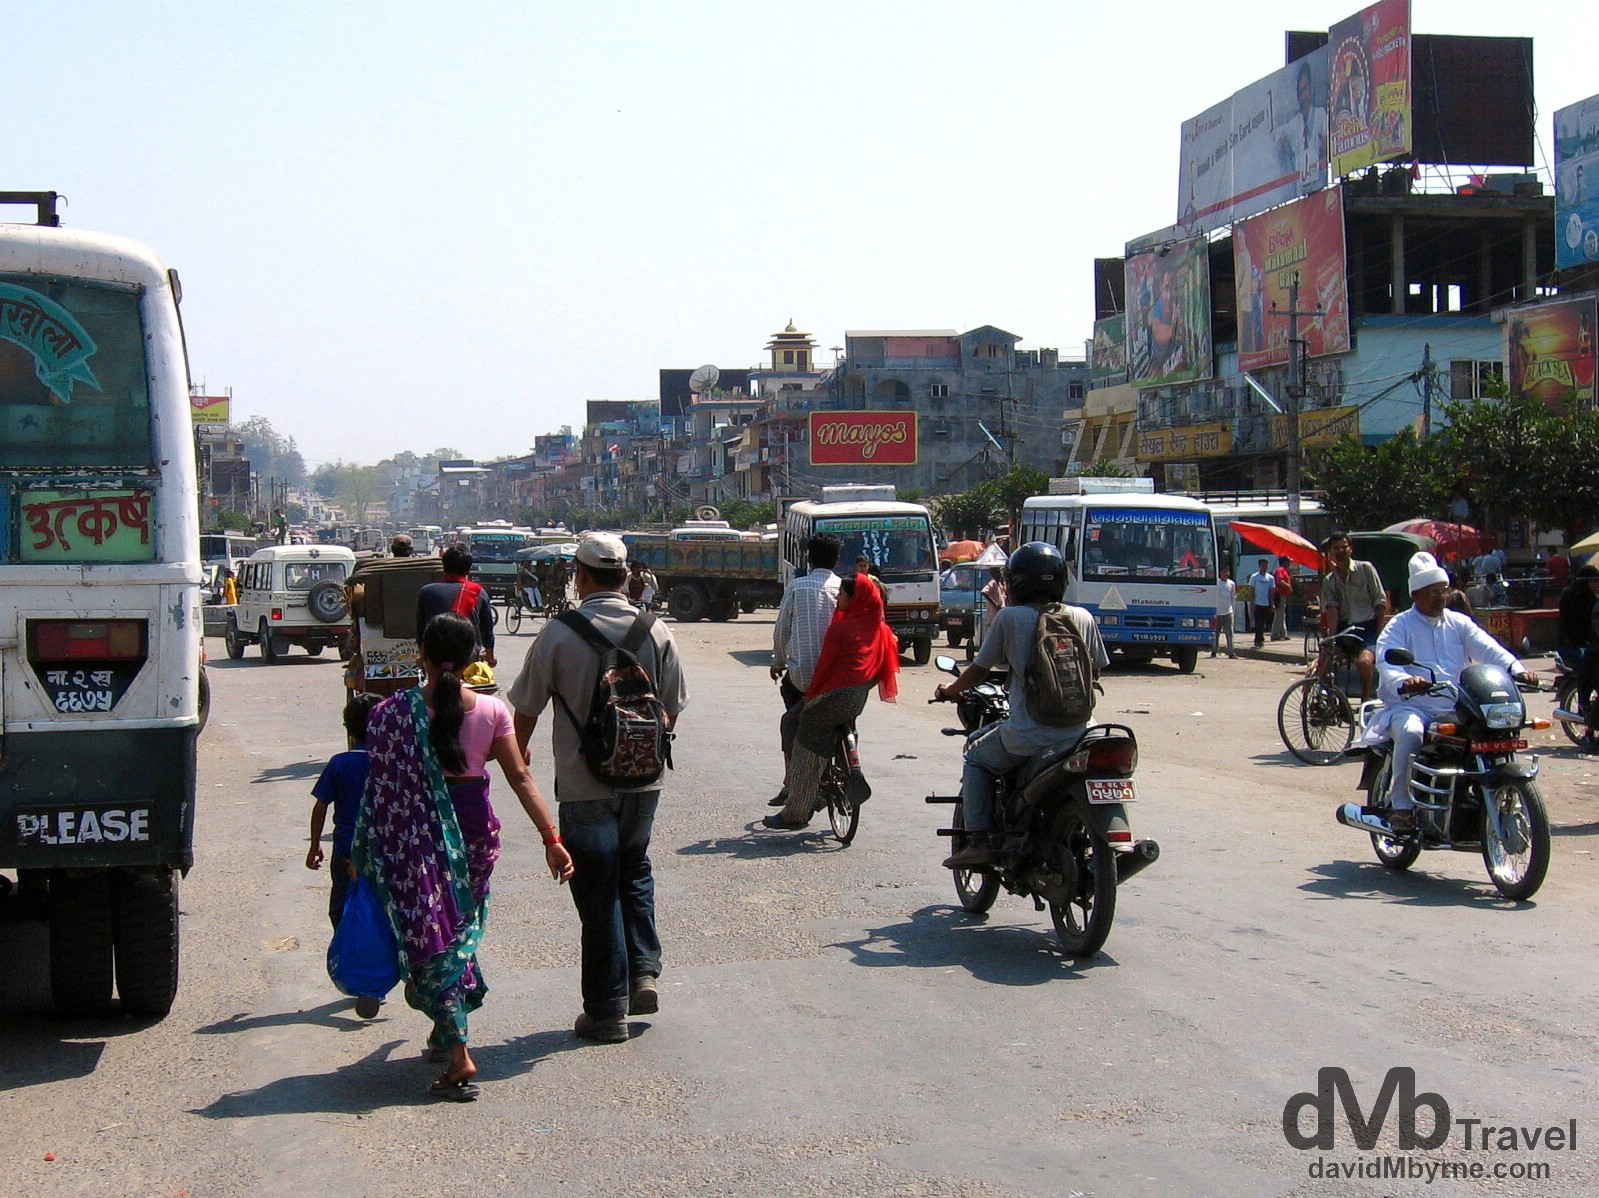 On the streets of Sunauli, Nepal, on the India/Nepal border. March 15, 2008.